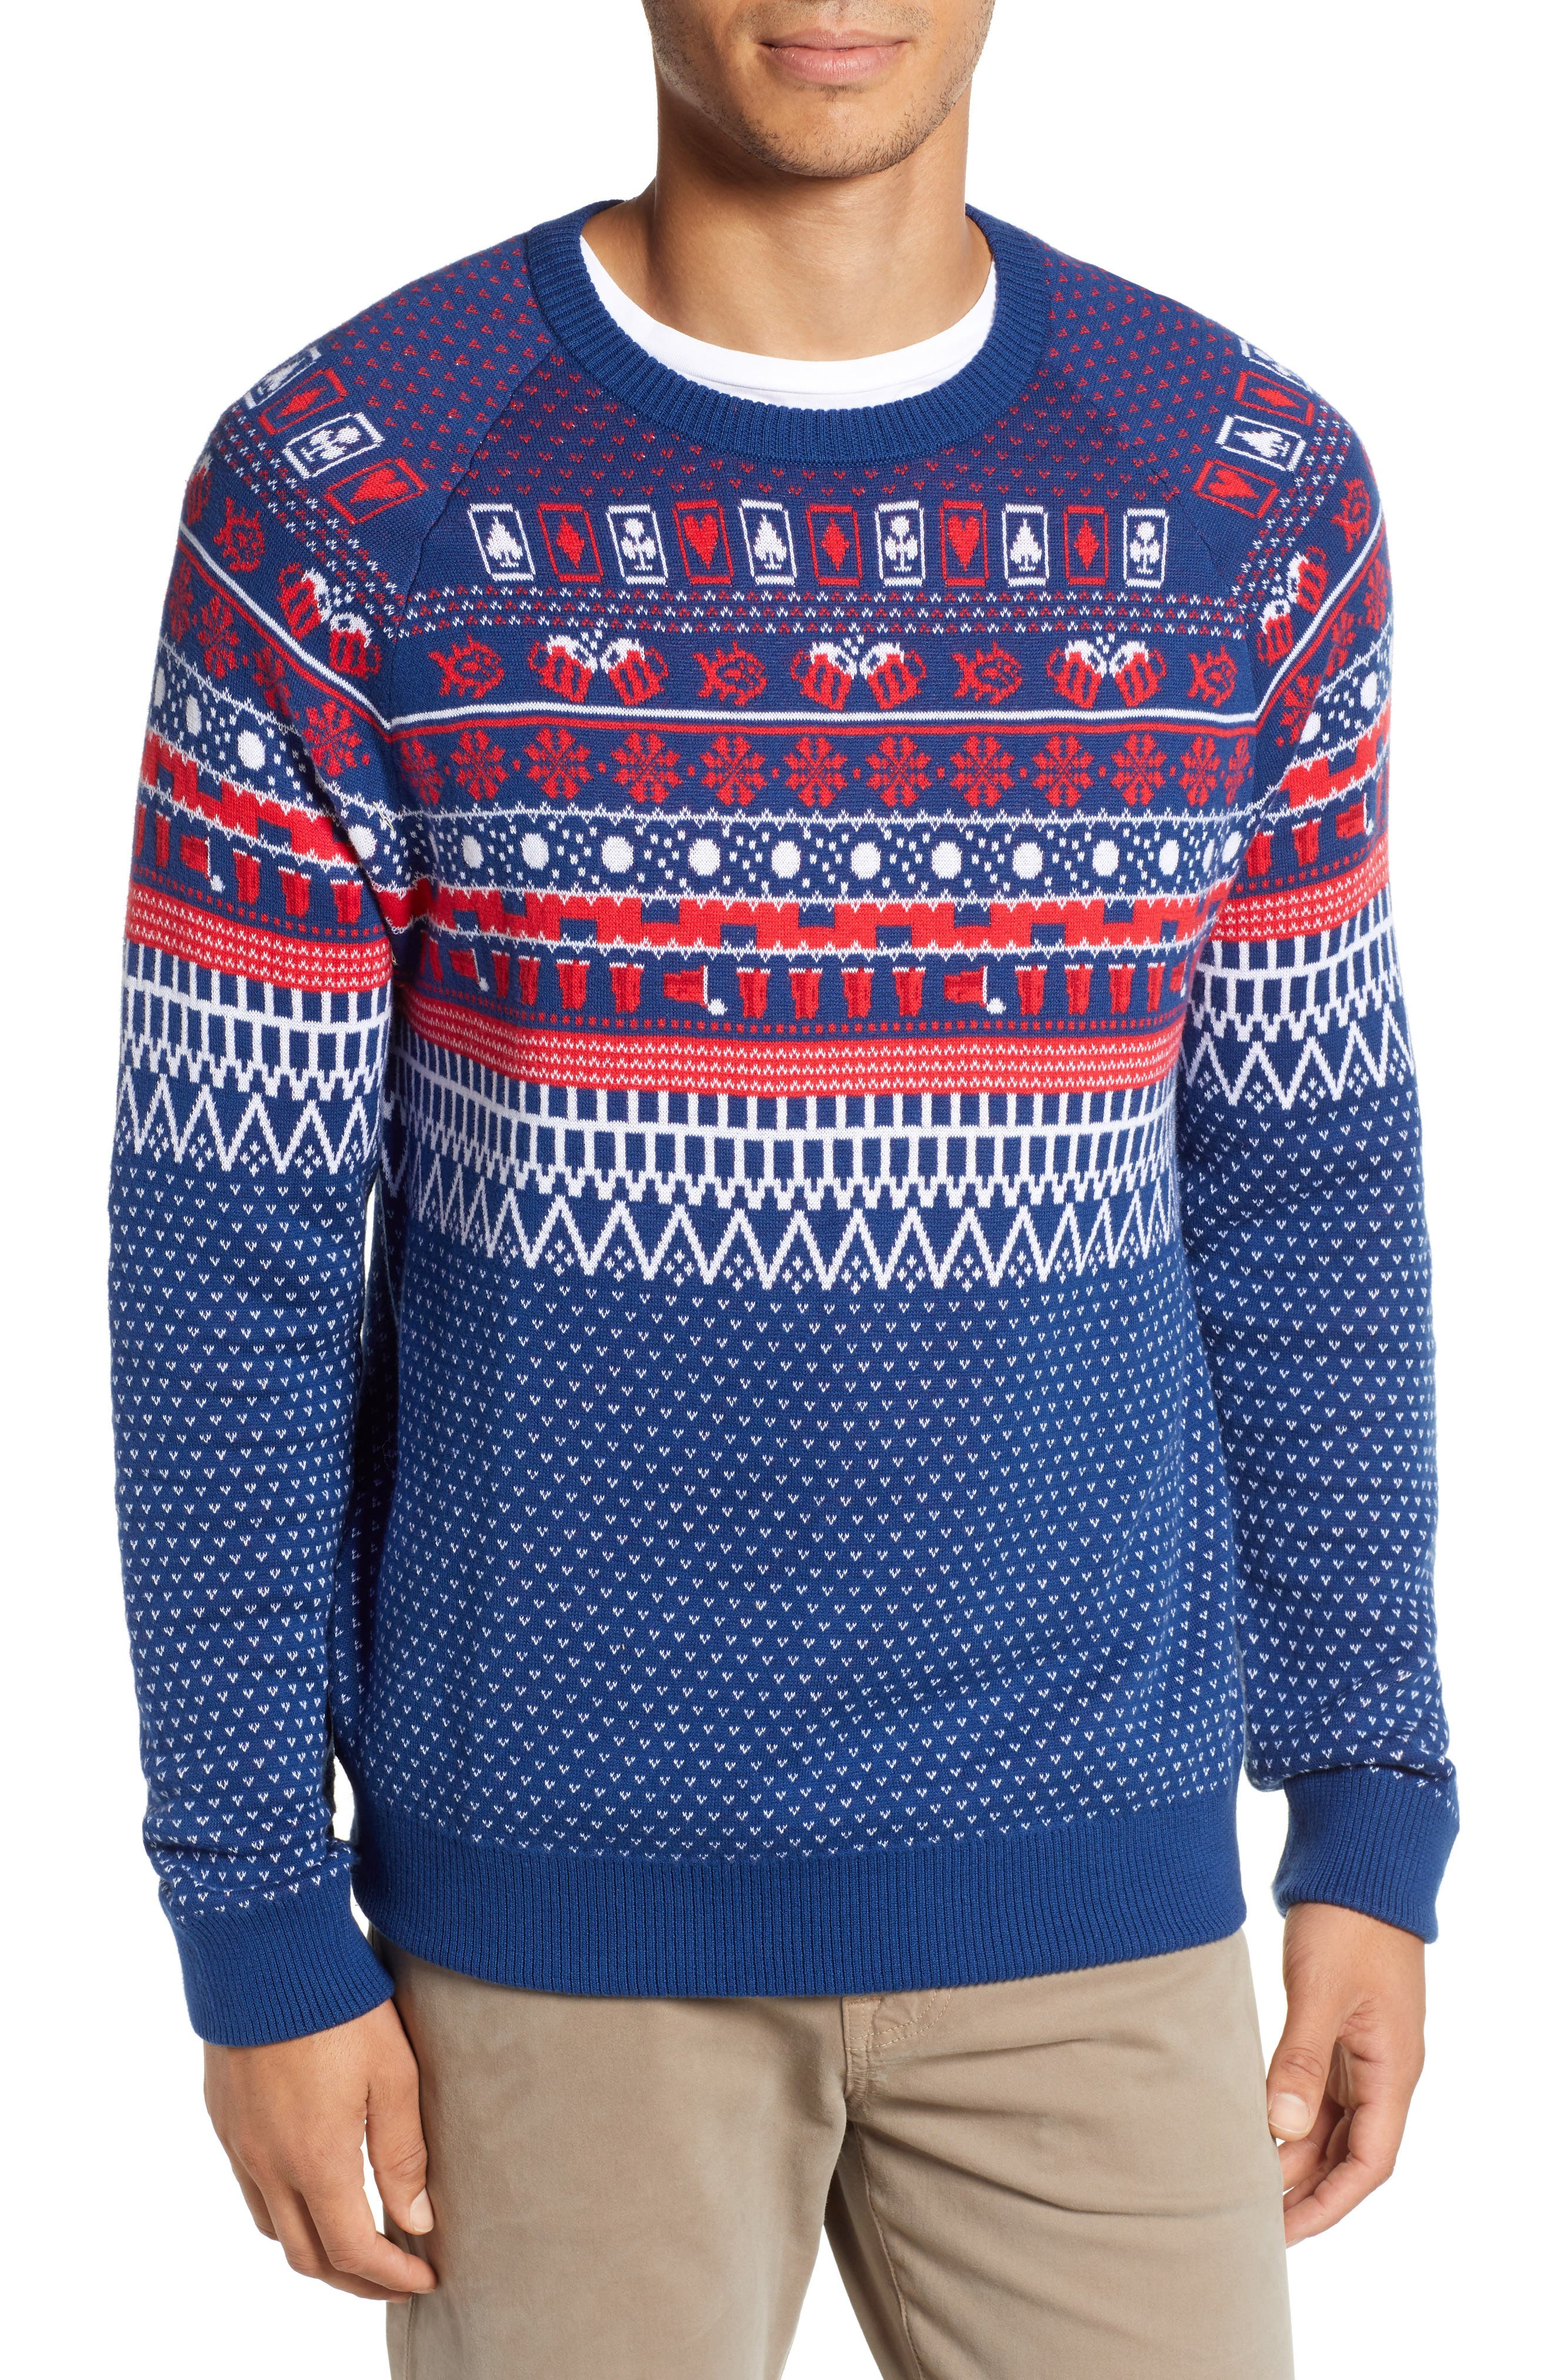 Southern Tide Rendezvous Sweater, Blue